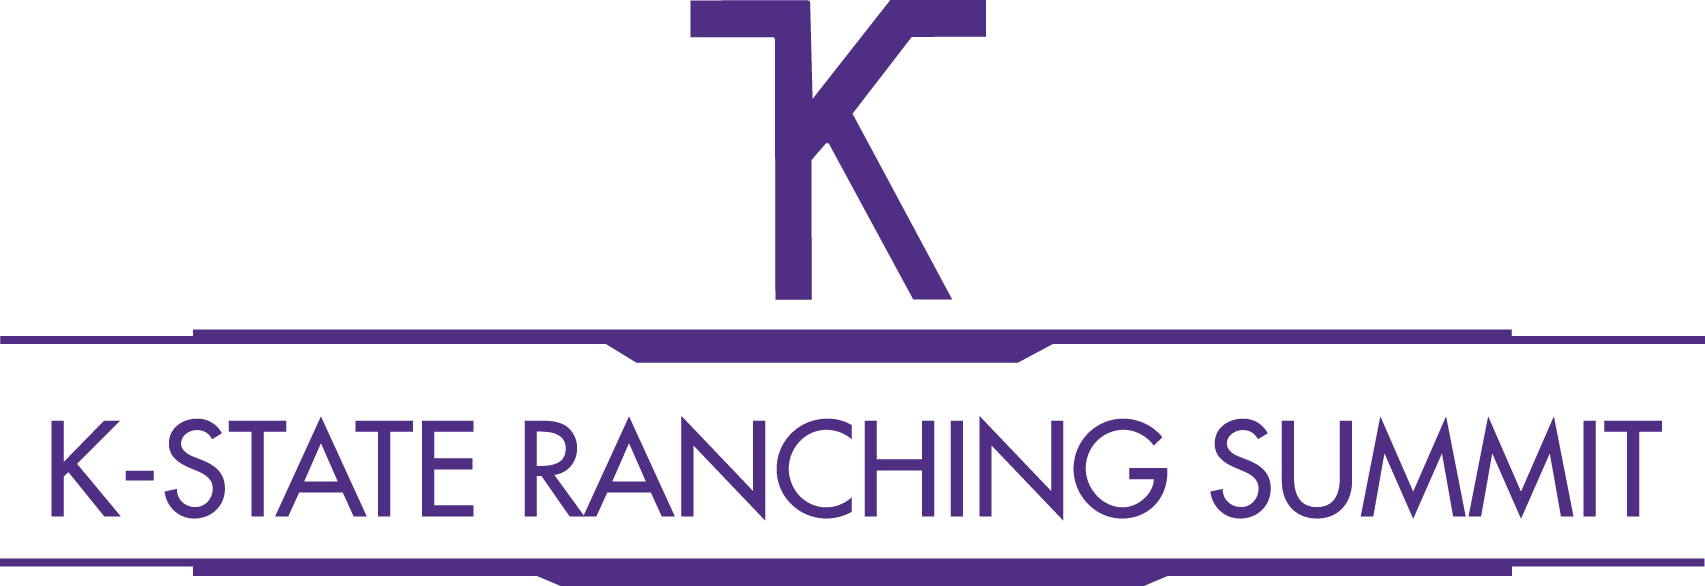 K-State Ranching Summit